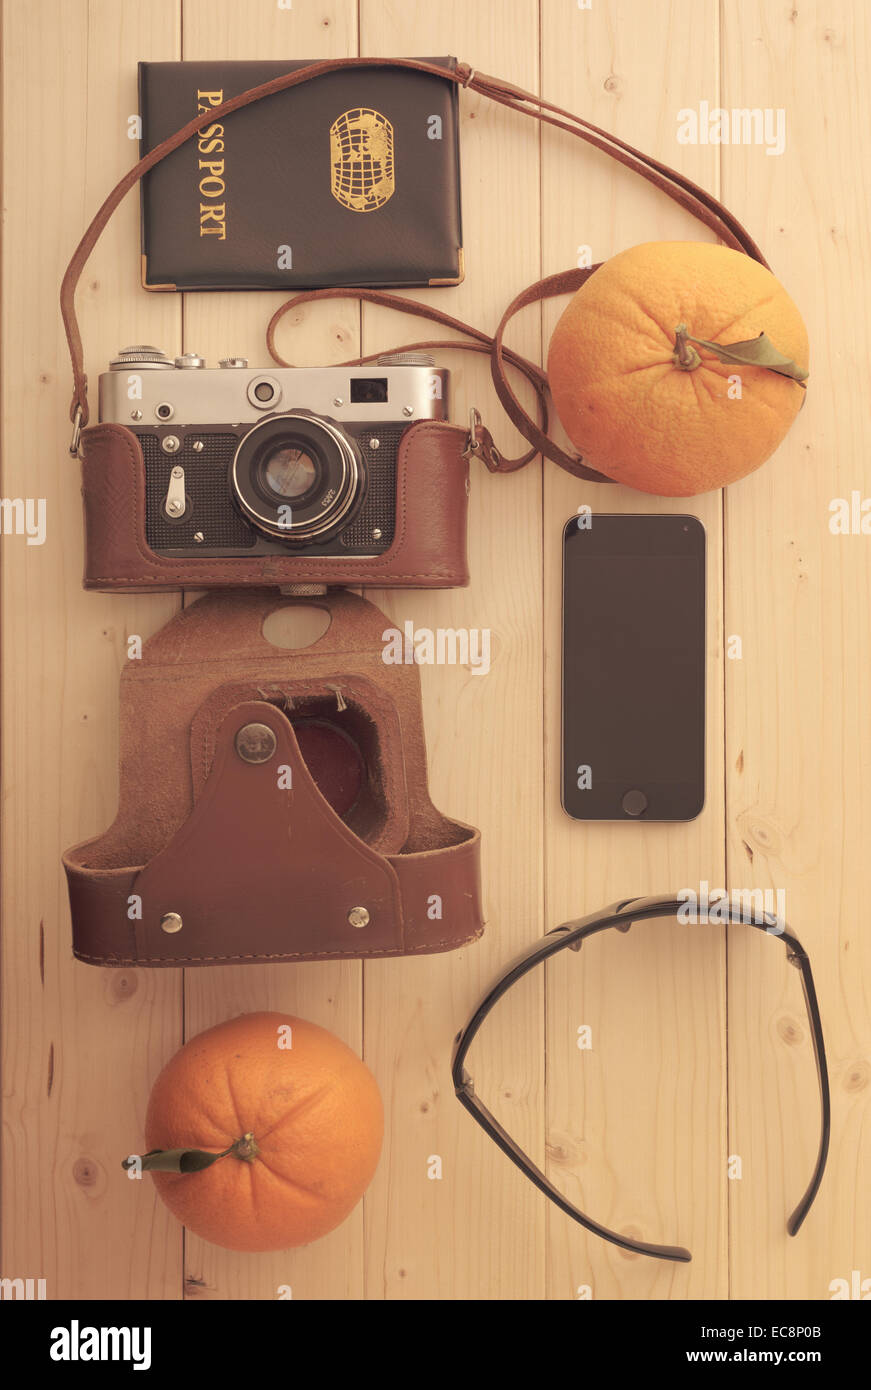 Travel set of things sunglasses, passport, camera phone and tropical fruits oranges - Stock Image